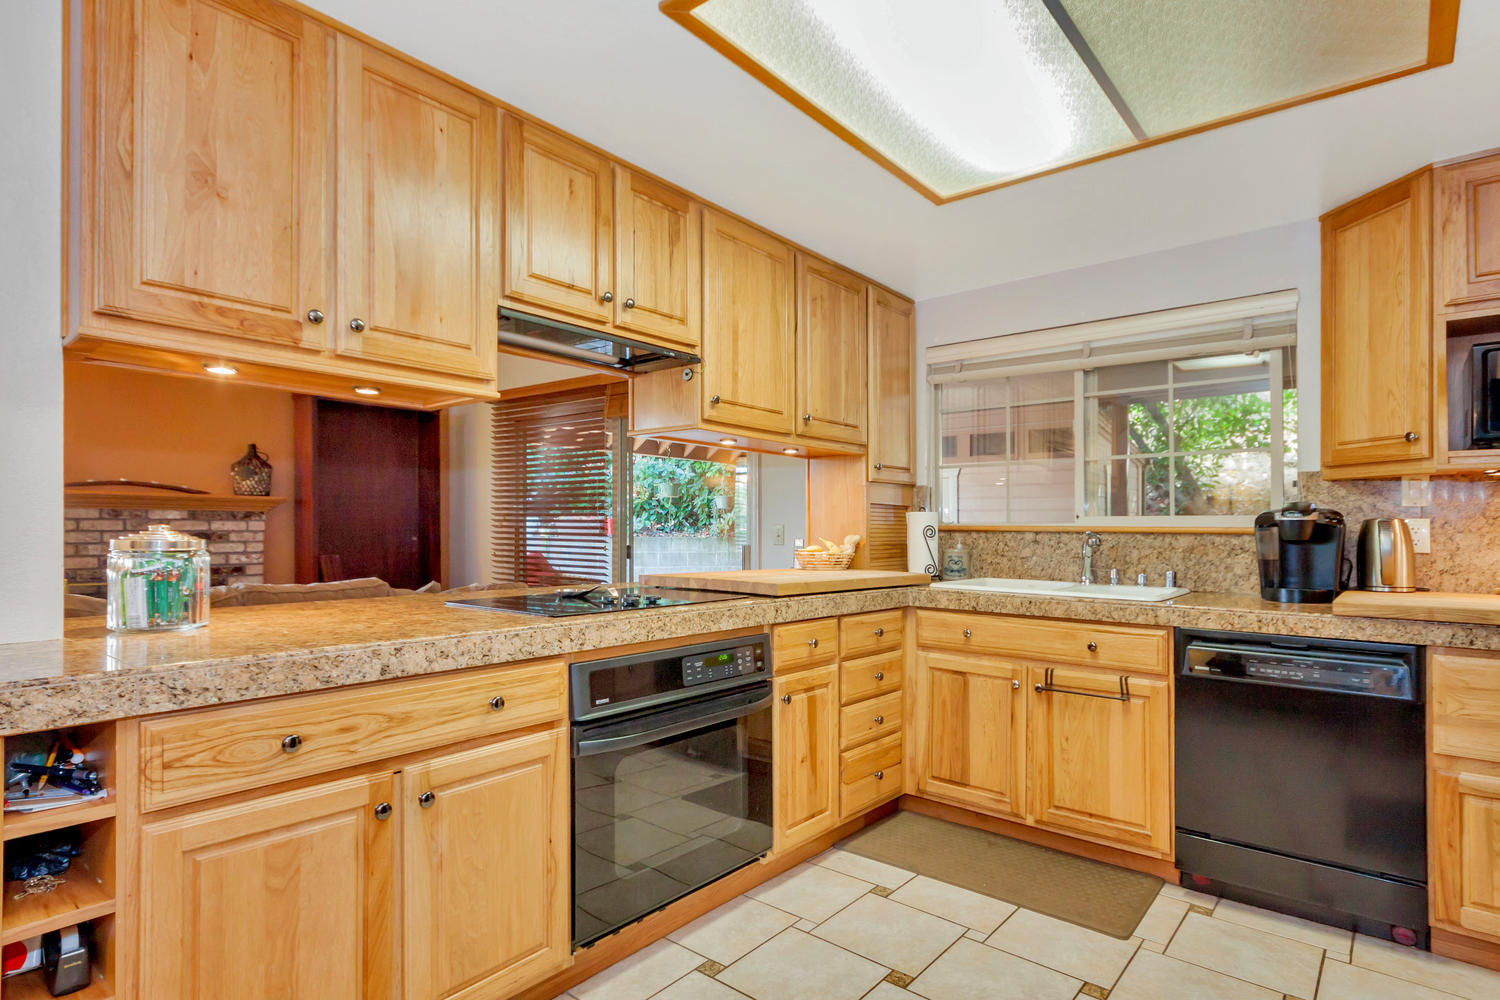 1302 W 13th St Benicia CA-large-010-26-Kitchen 1-1500x1000-72dpi.jpg